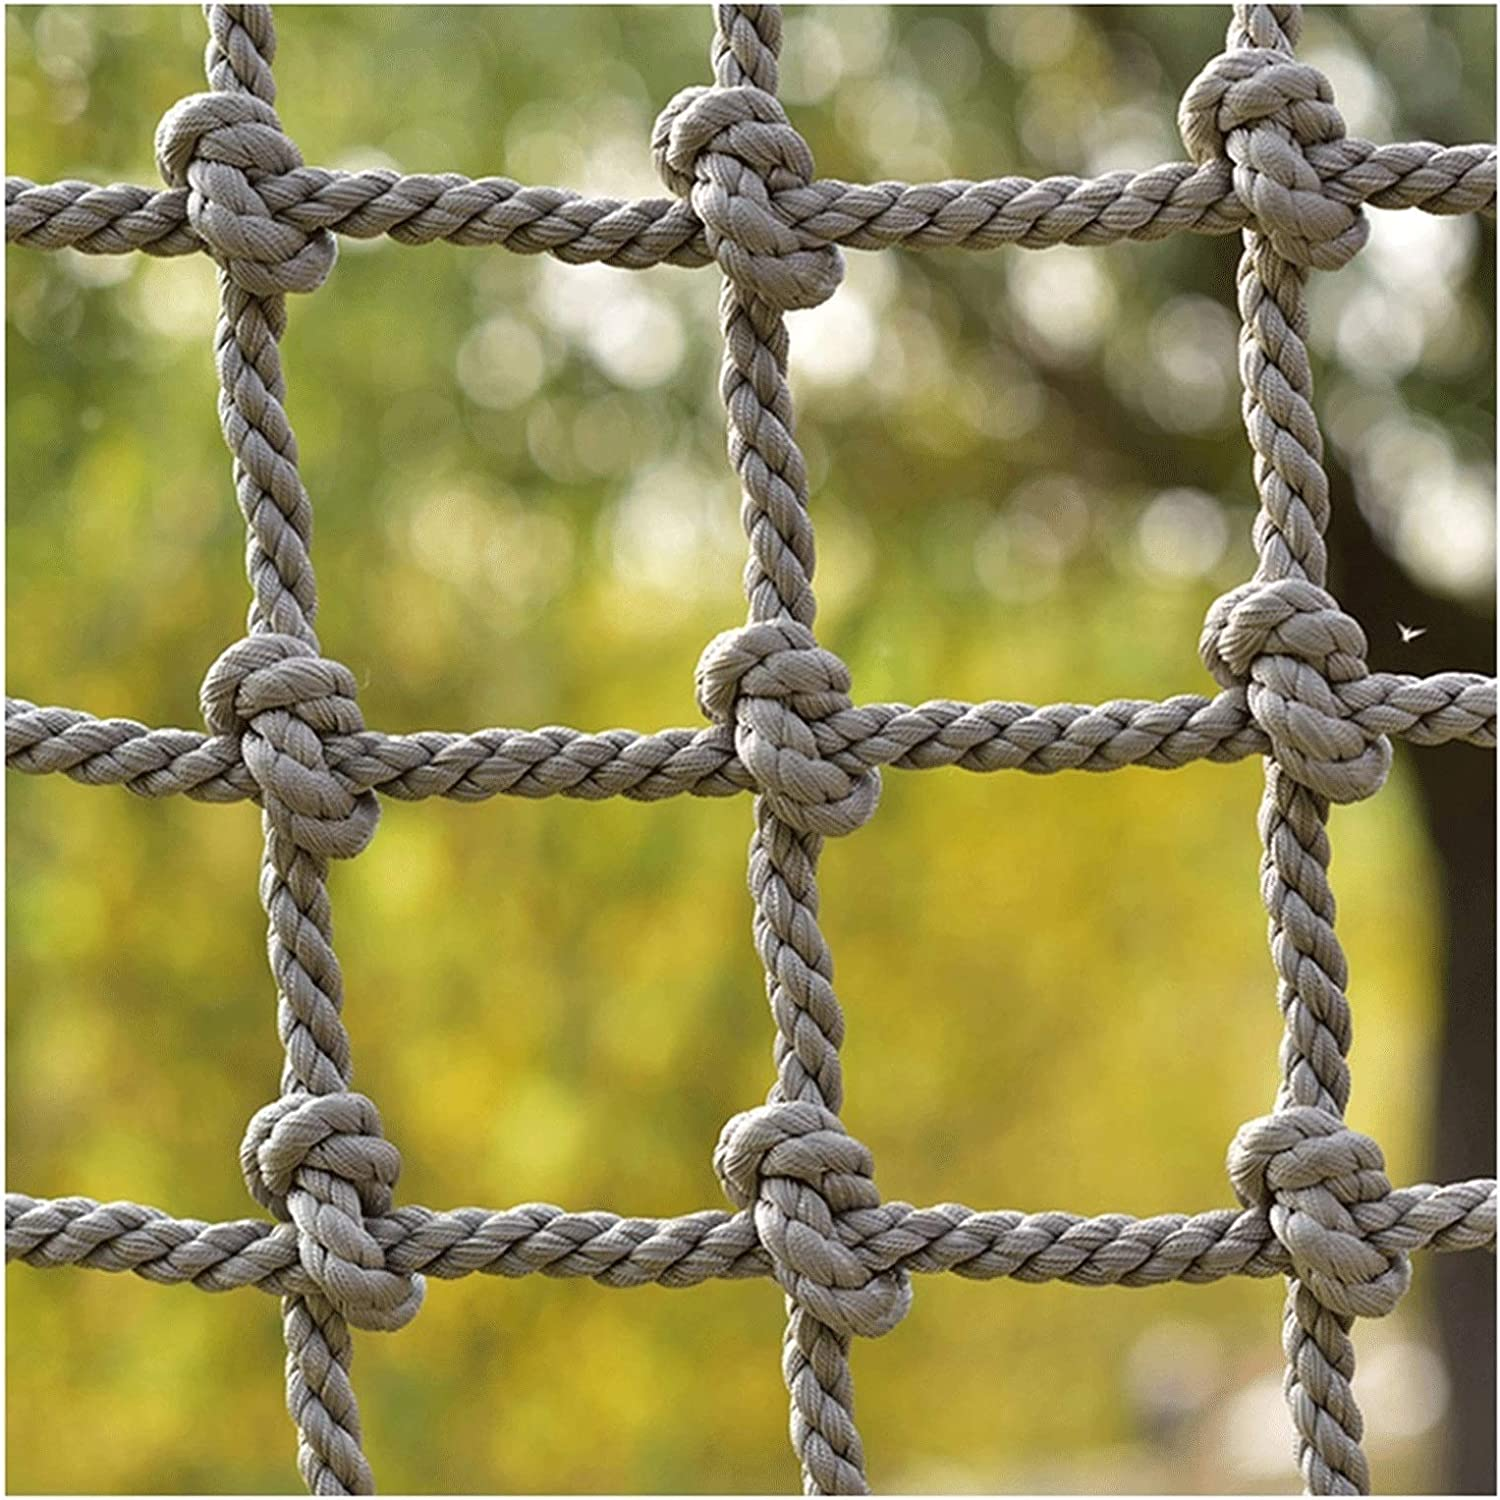 LYRFHW Safety Netting Playground Rope Reservation Camping Nets Max 88% OFF Kindergarten